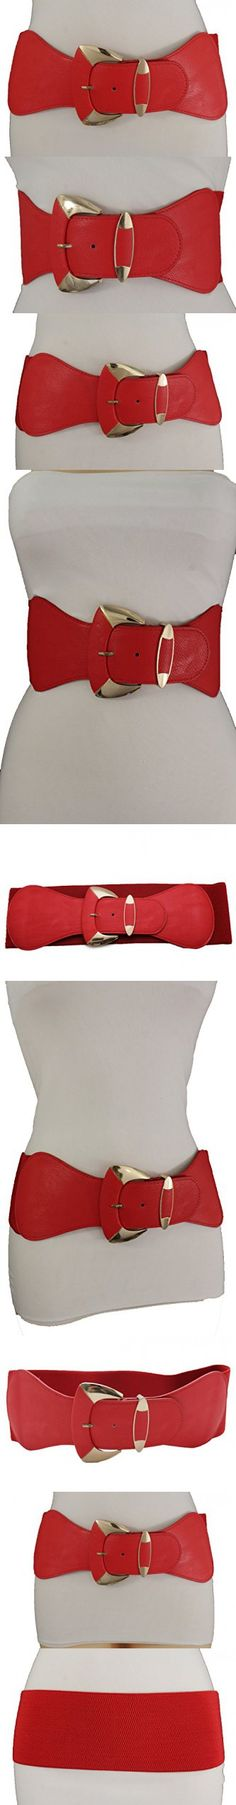 b35590d4d5 TFJ Women Fashion Wide Belt Elastic Hip High Waist Gold Metal Buckle Fits S  M Red